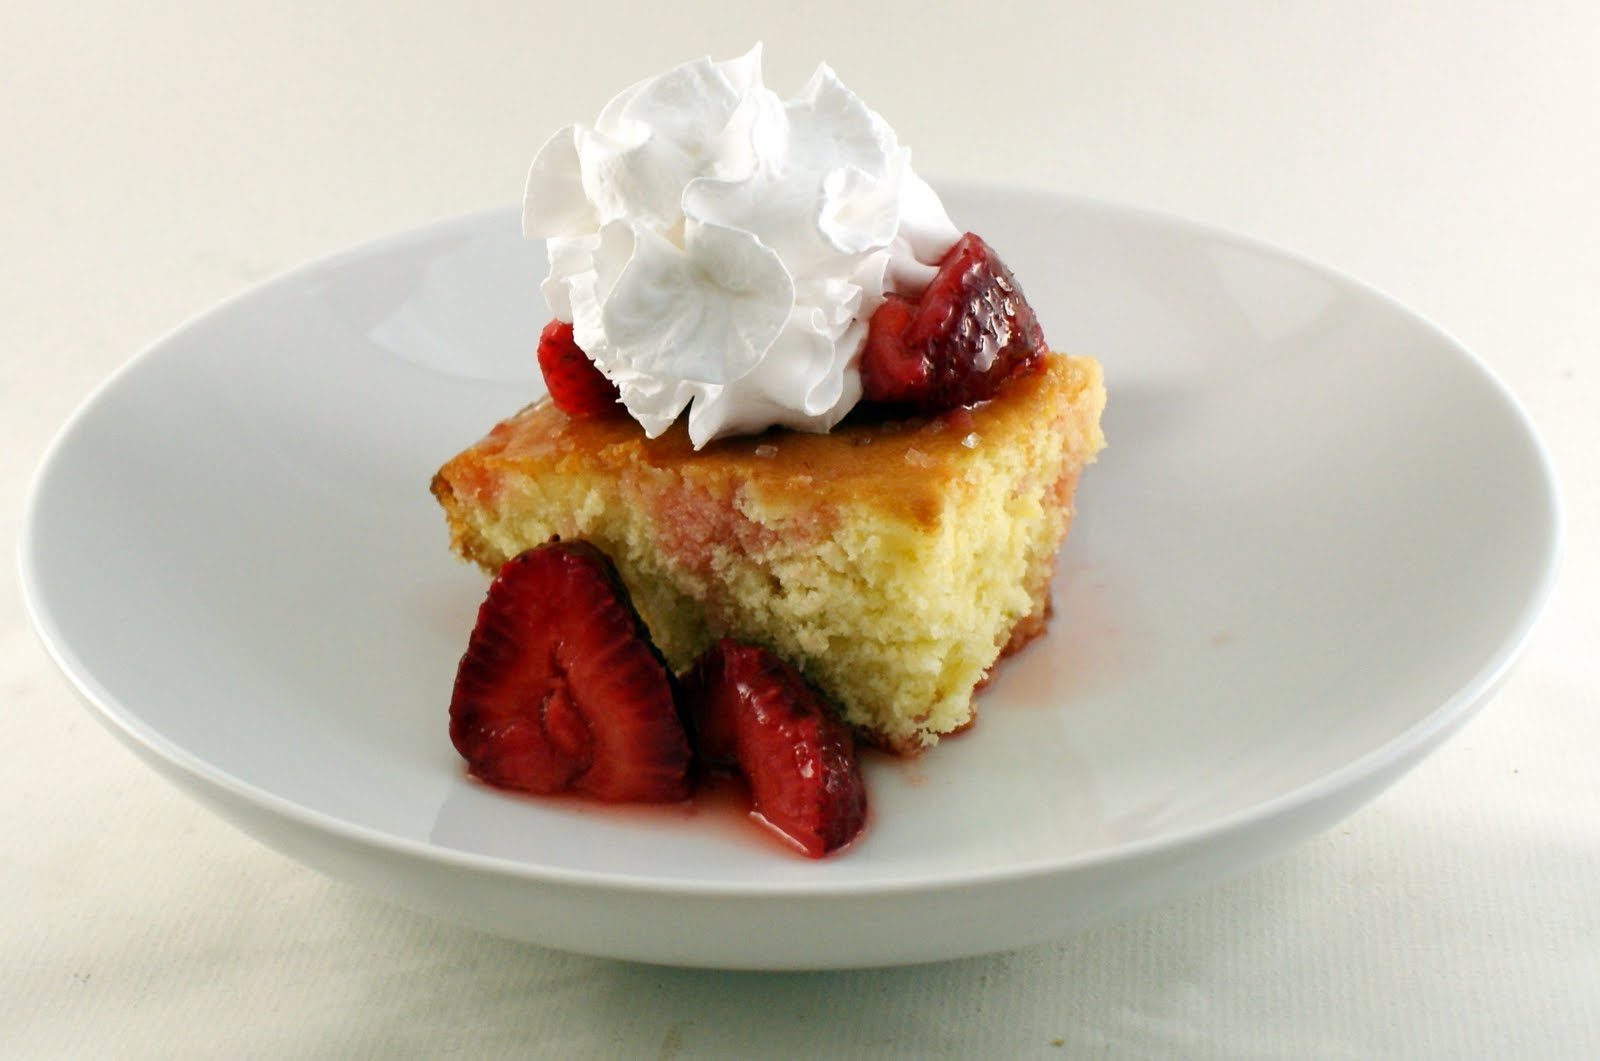 The Merlin Menu: Lime Cake with Strawberry Compote